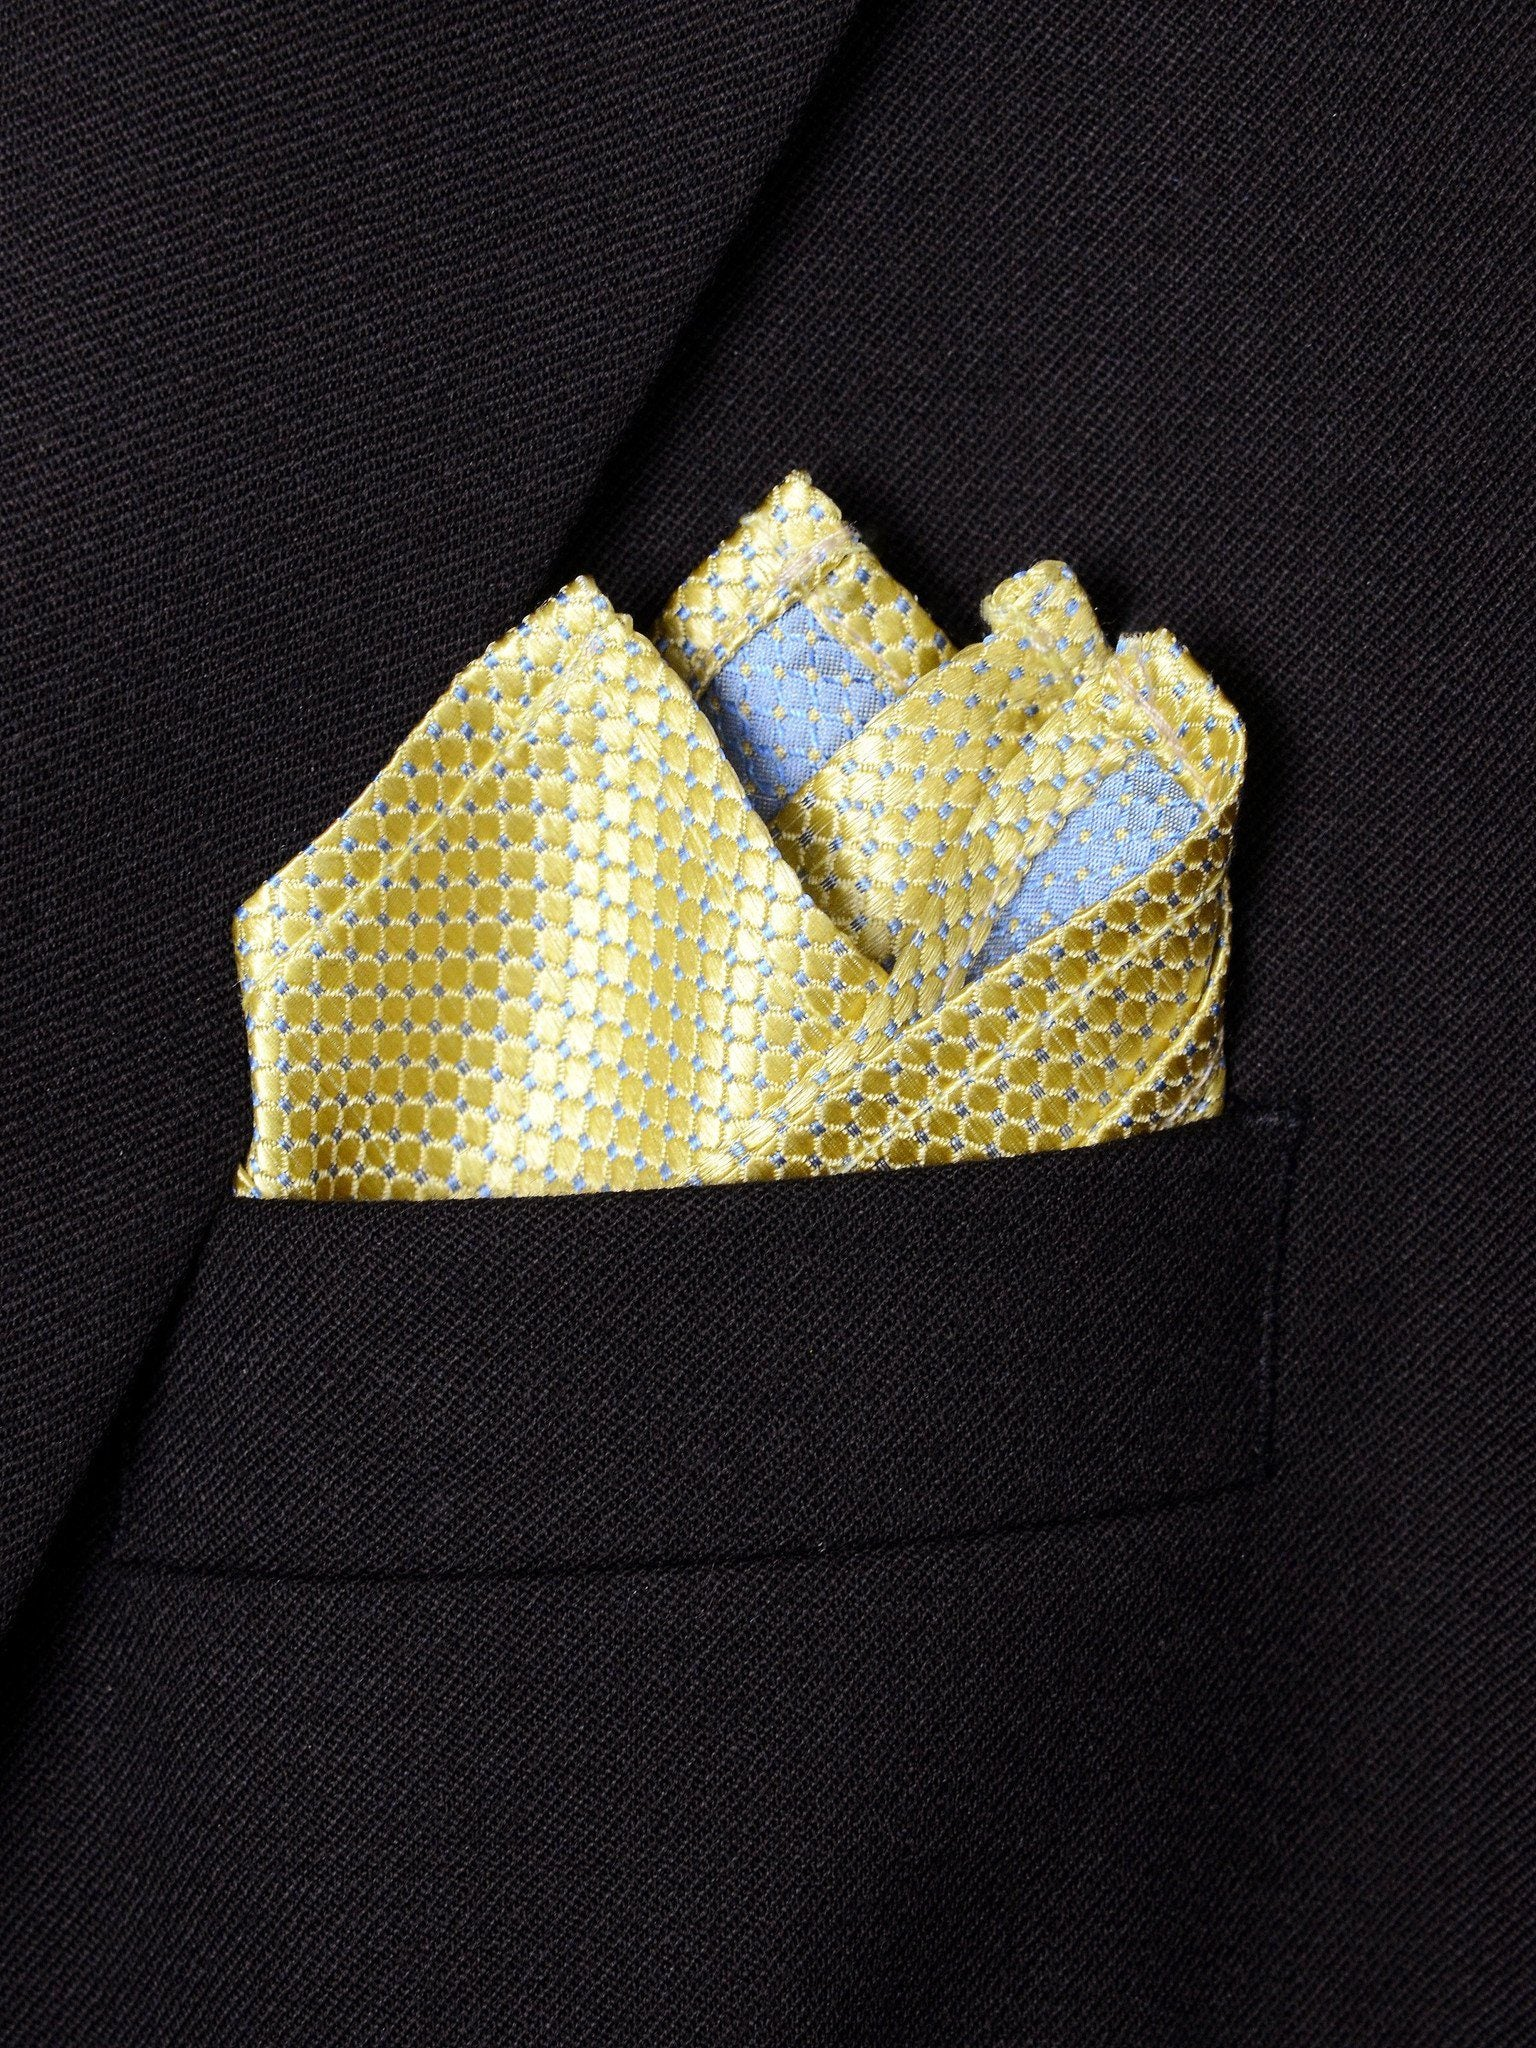 Boy's Pocket Square 18244 Yellow Neat